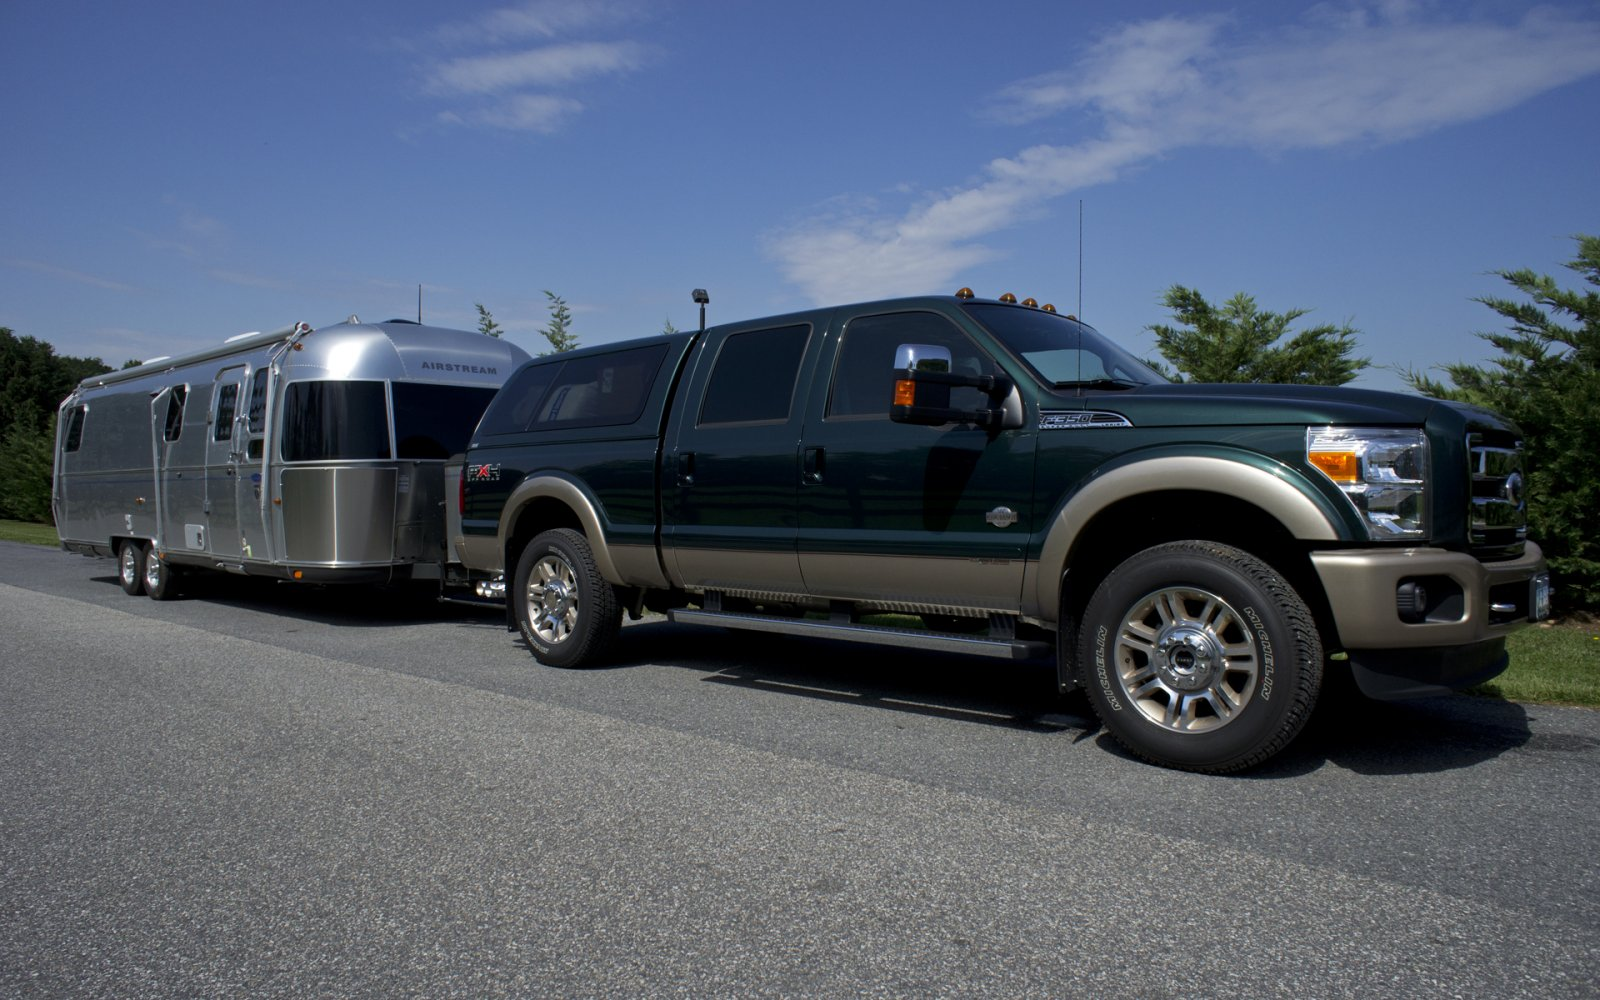 Click image for larger version  Name:11AirstreamClass301stTrip-1.jpg Views:107 Size:274.1 KB ID:132845